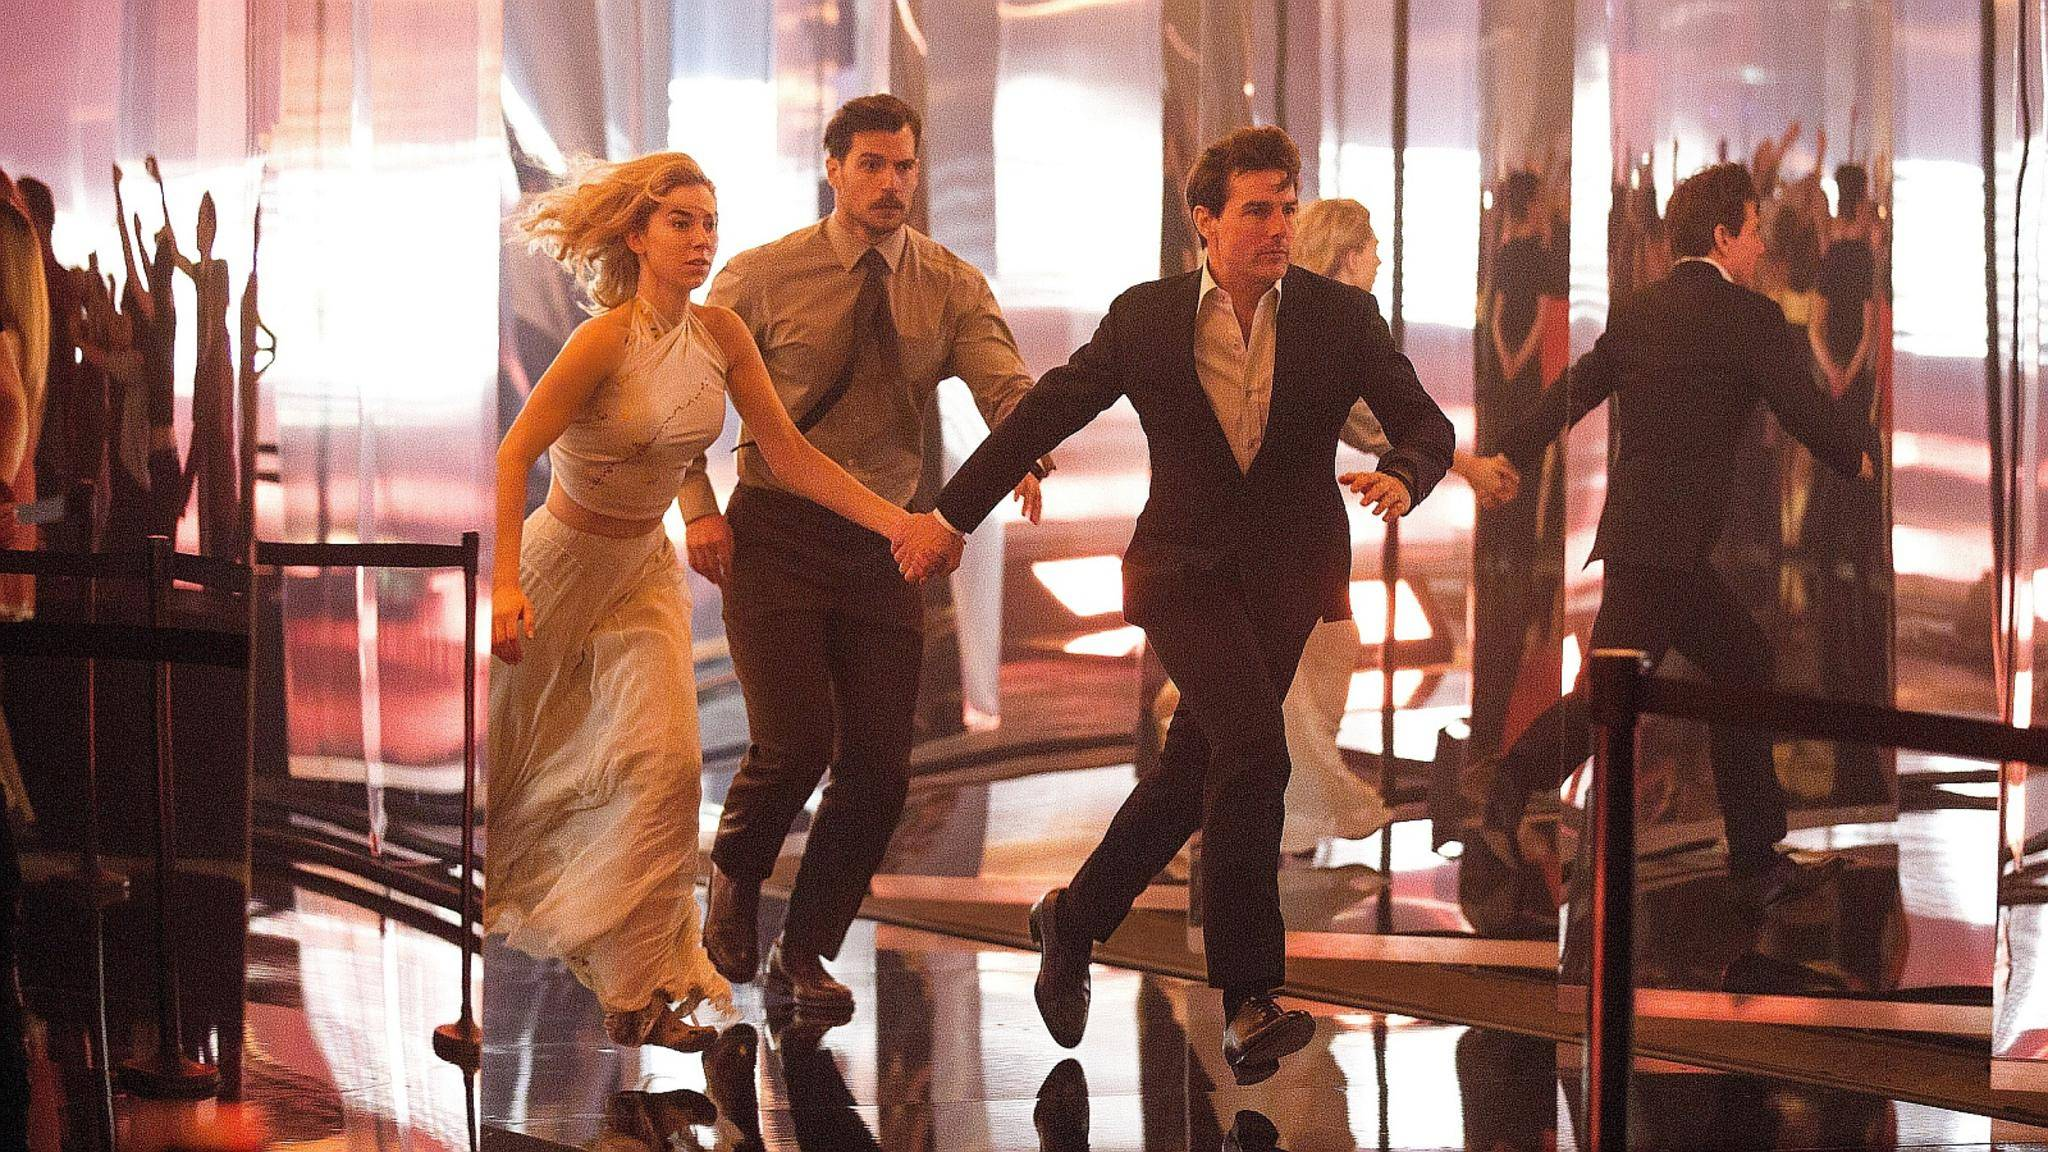 mission-impossible-fallout-tom-cruise-vanessa-kirby-henry-cavill